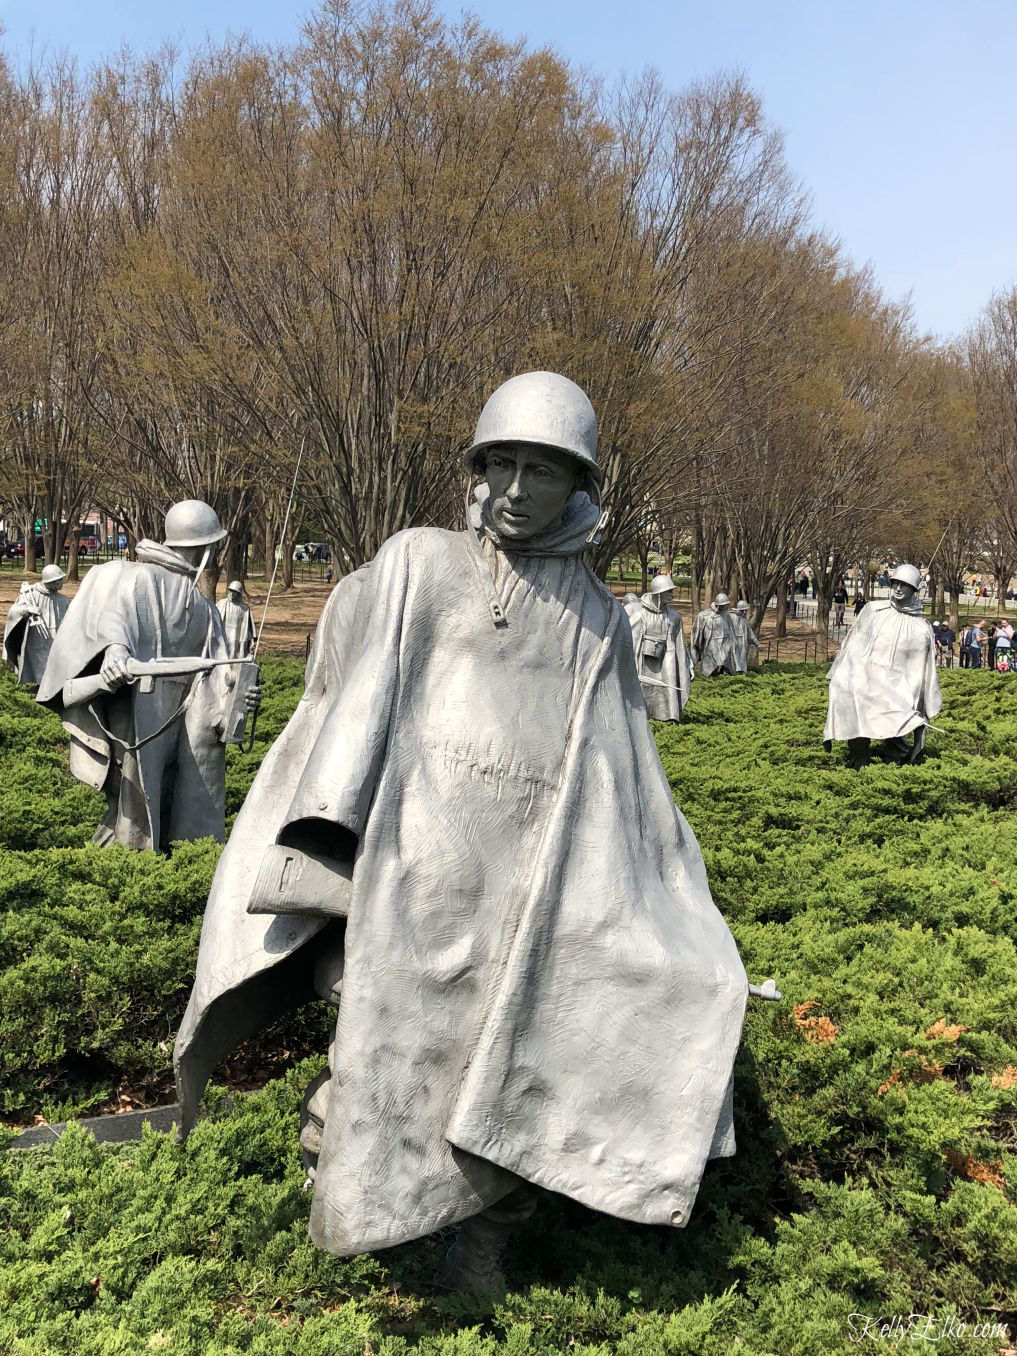 Weekend in Washington DC - the Korean War Veterans Memorial is so moving kellyelko.com #travel #travelblogger #washingtondc #dc #vacation #familytravel #getaway #escape #koreanwarmemorial